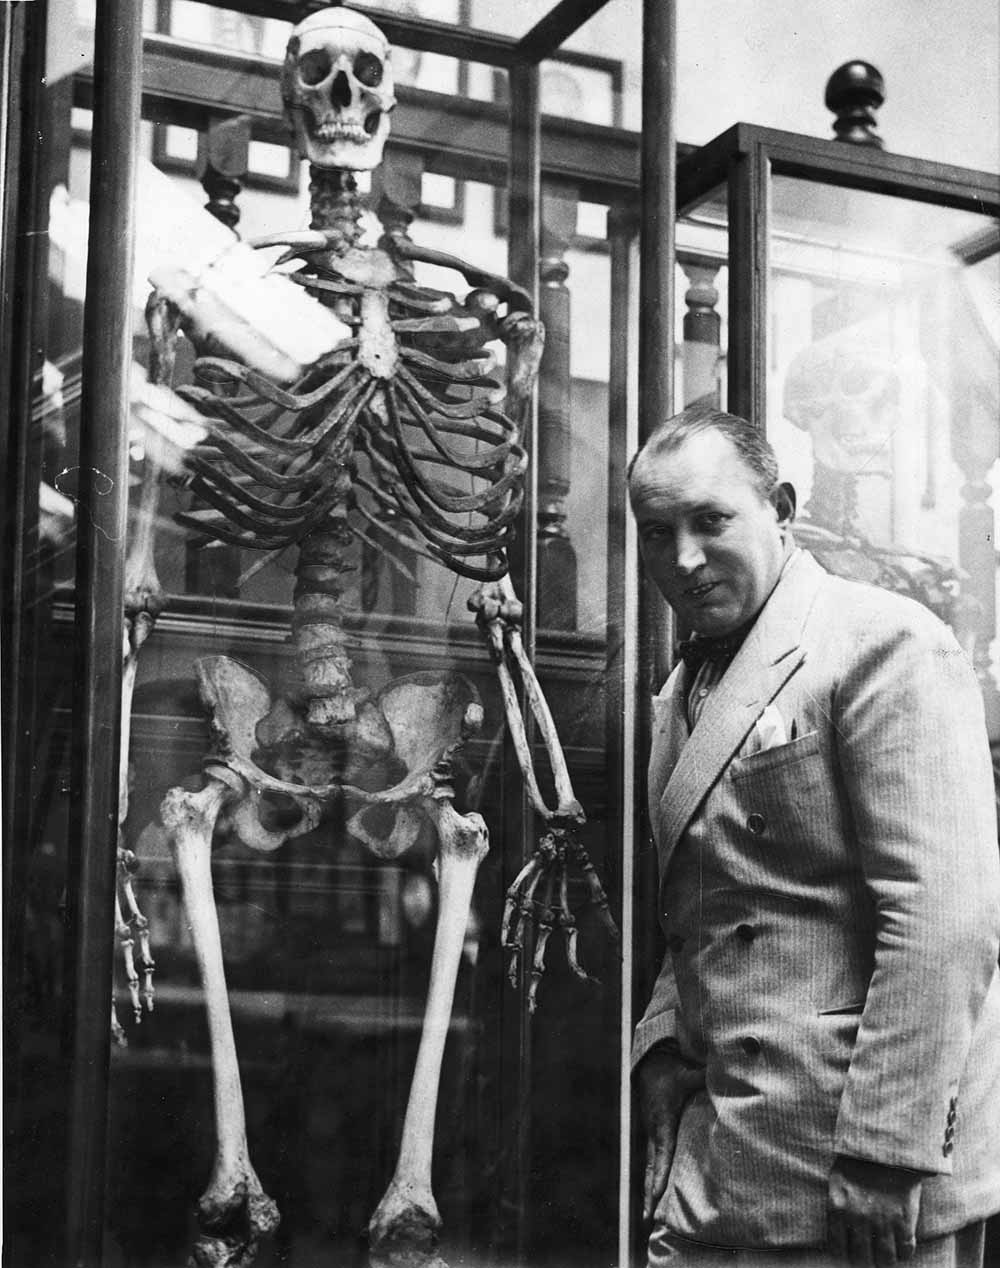 irish giant and robert ripley